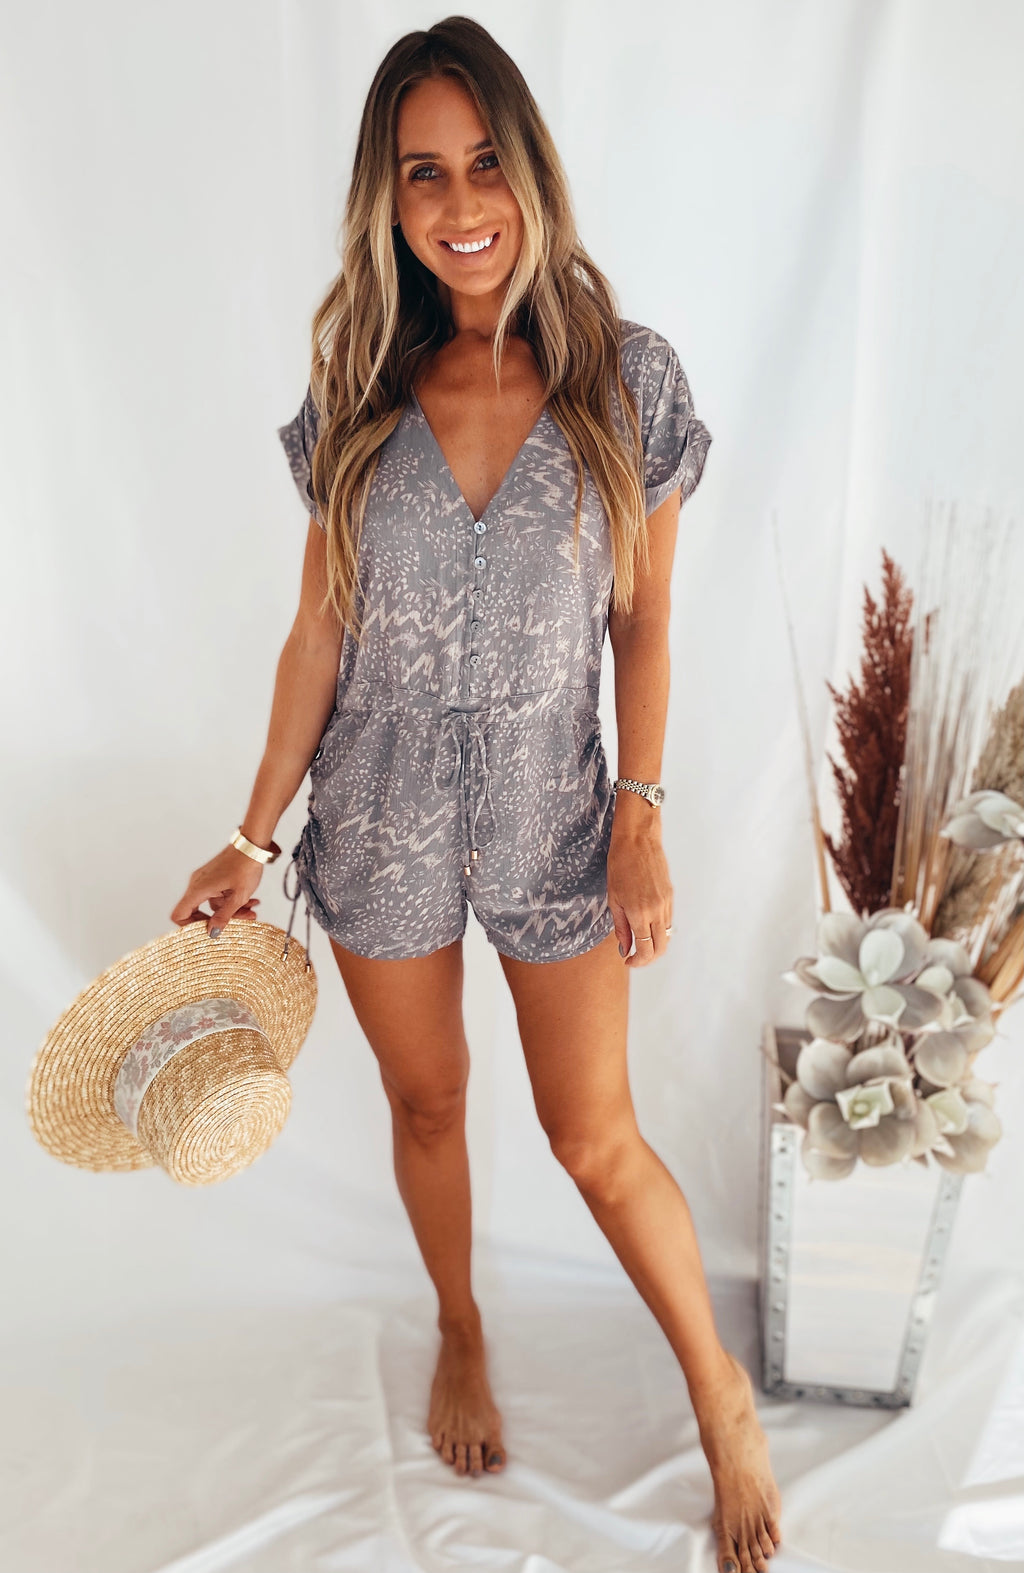 The Hermosa Romper